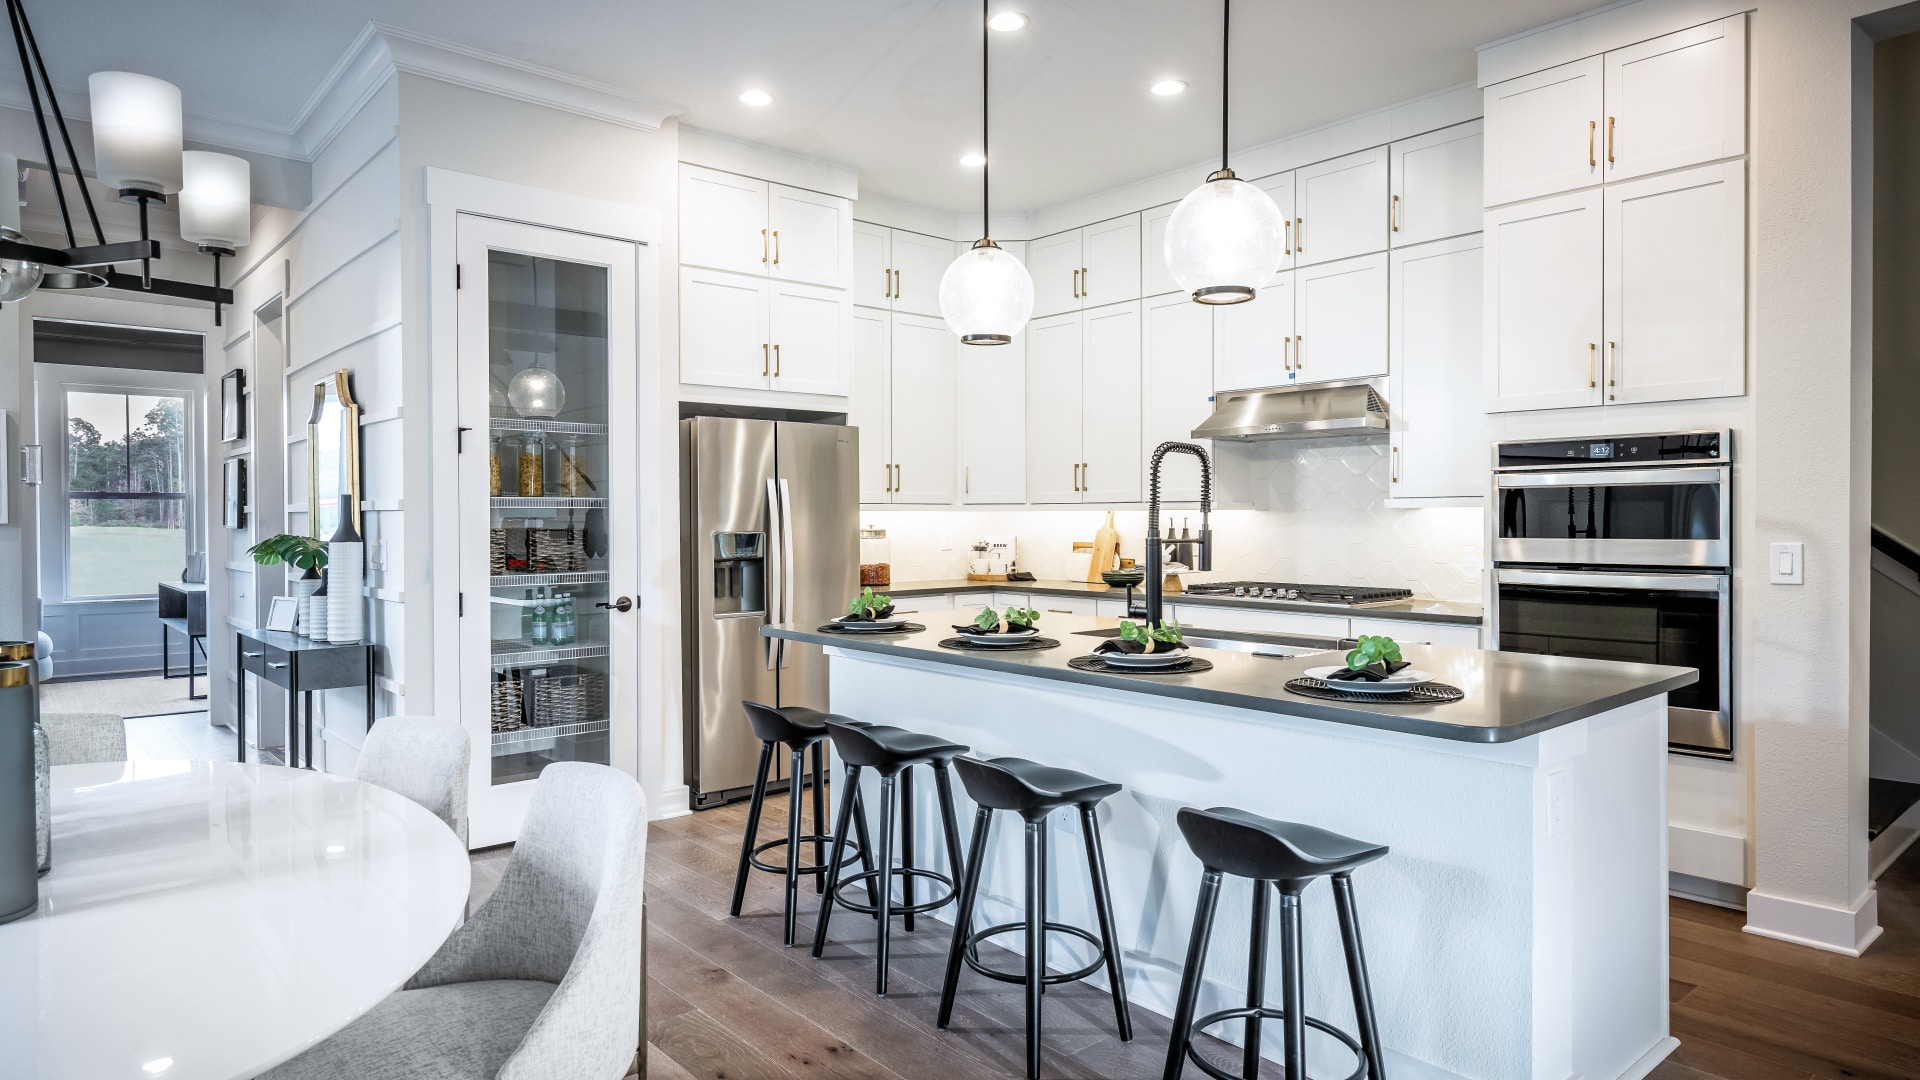 Well-appointed kitchens